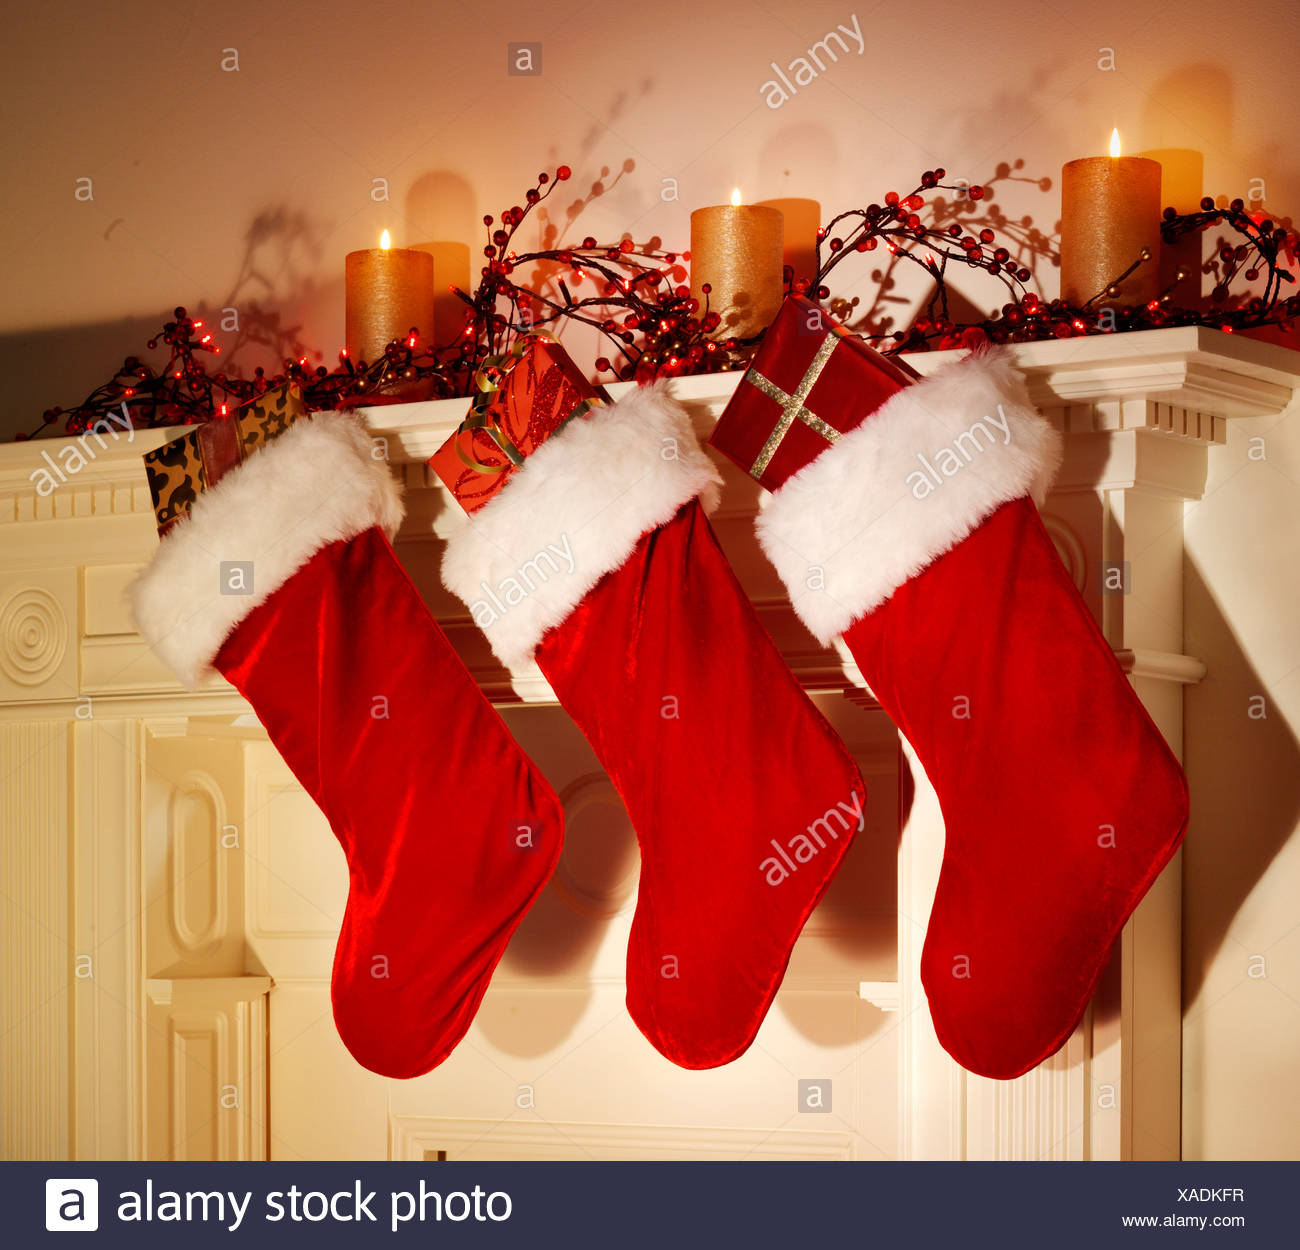 CHRISTMAS STOCKINGS HANGING ON FIREPLACE Stock Photo ...